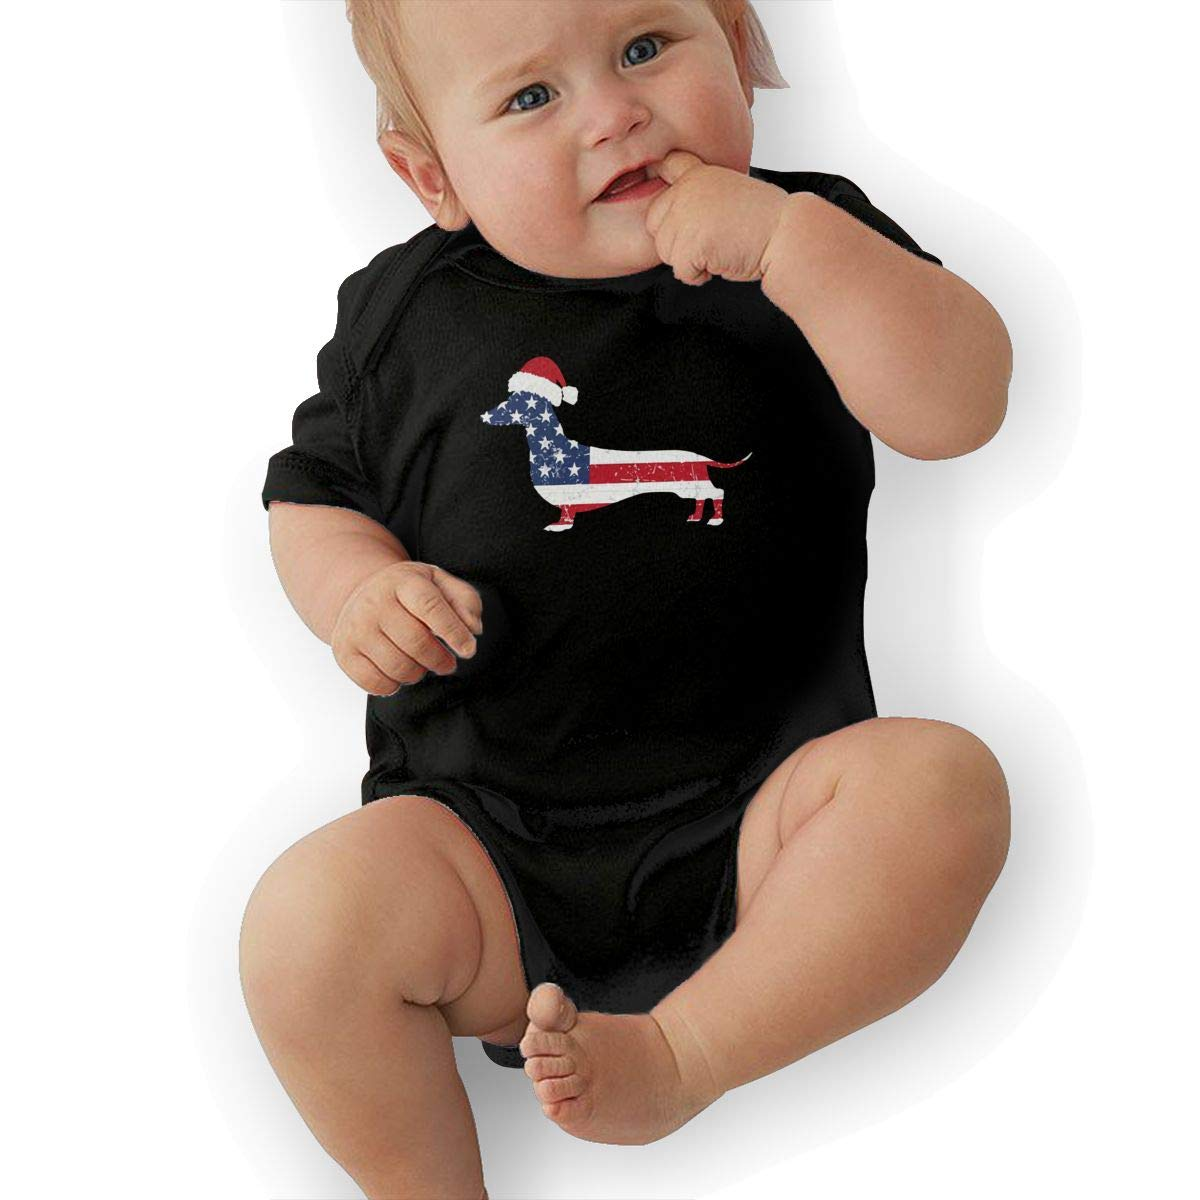 Cute American Flag Dachshund Onesies U88oi-8 Short Sleeve Cotton Rompers for Unisex Baby